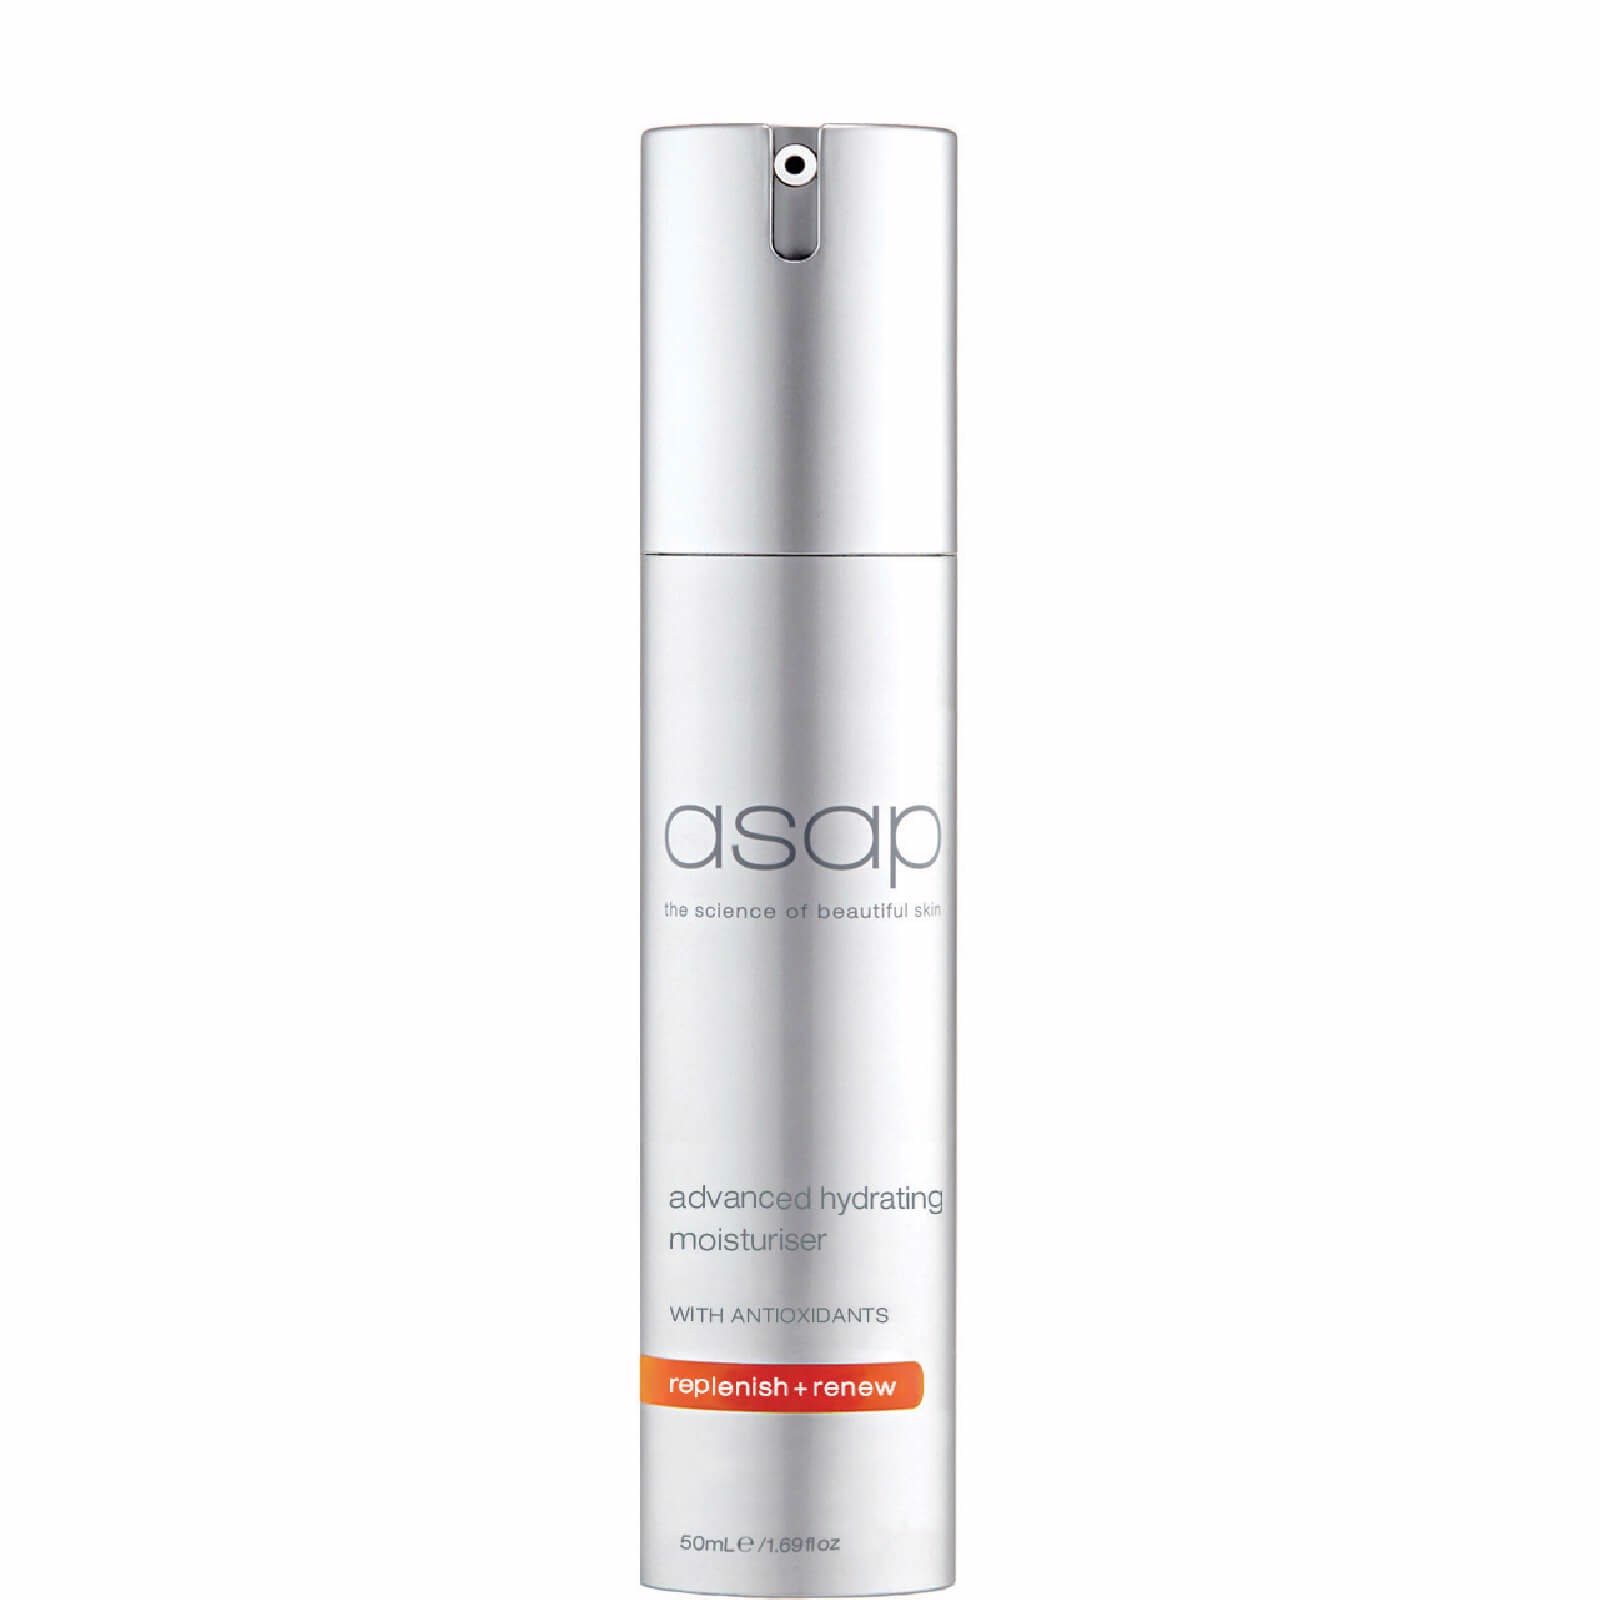 Kem dưỡng ẩm Asap advanced hydrating moisturiser 50ml